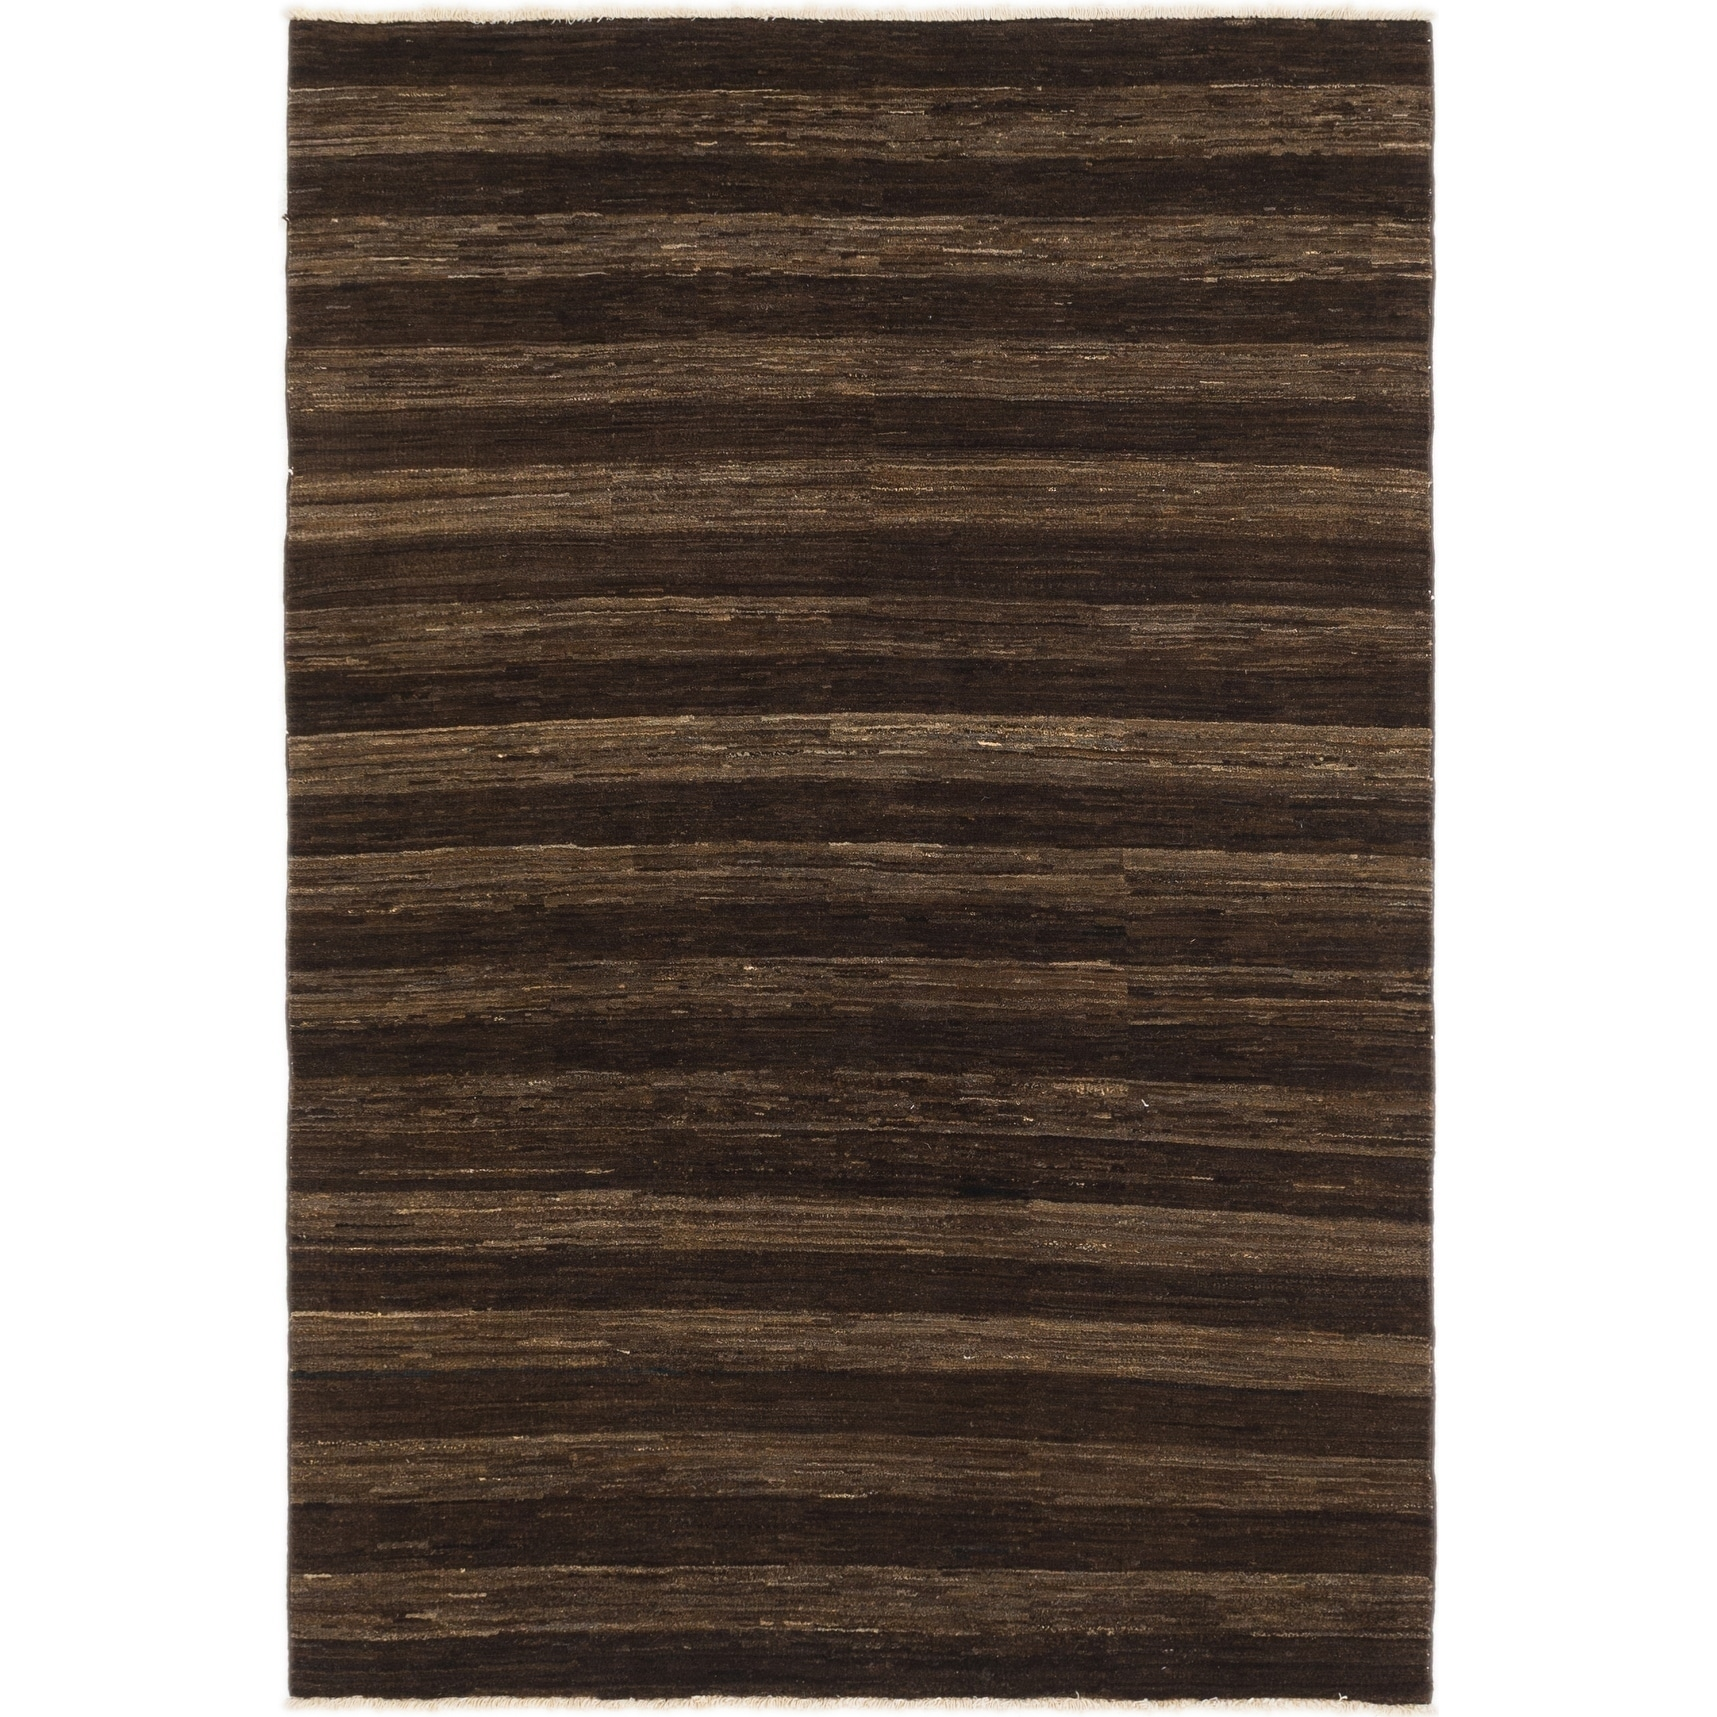 Hand Knotted Kashkuli Gabbeh Wool Area Rug - 5 x 7 6 (Brown - 5 x 7 6)